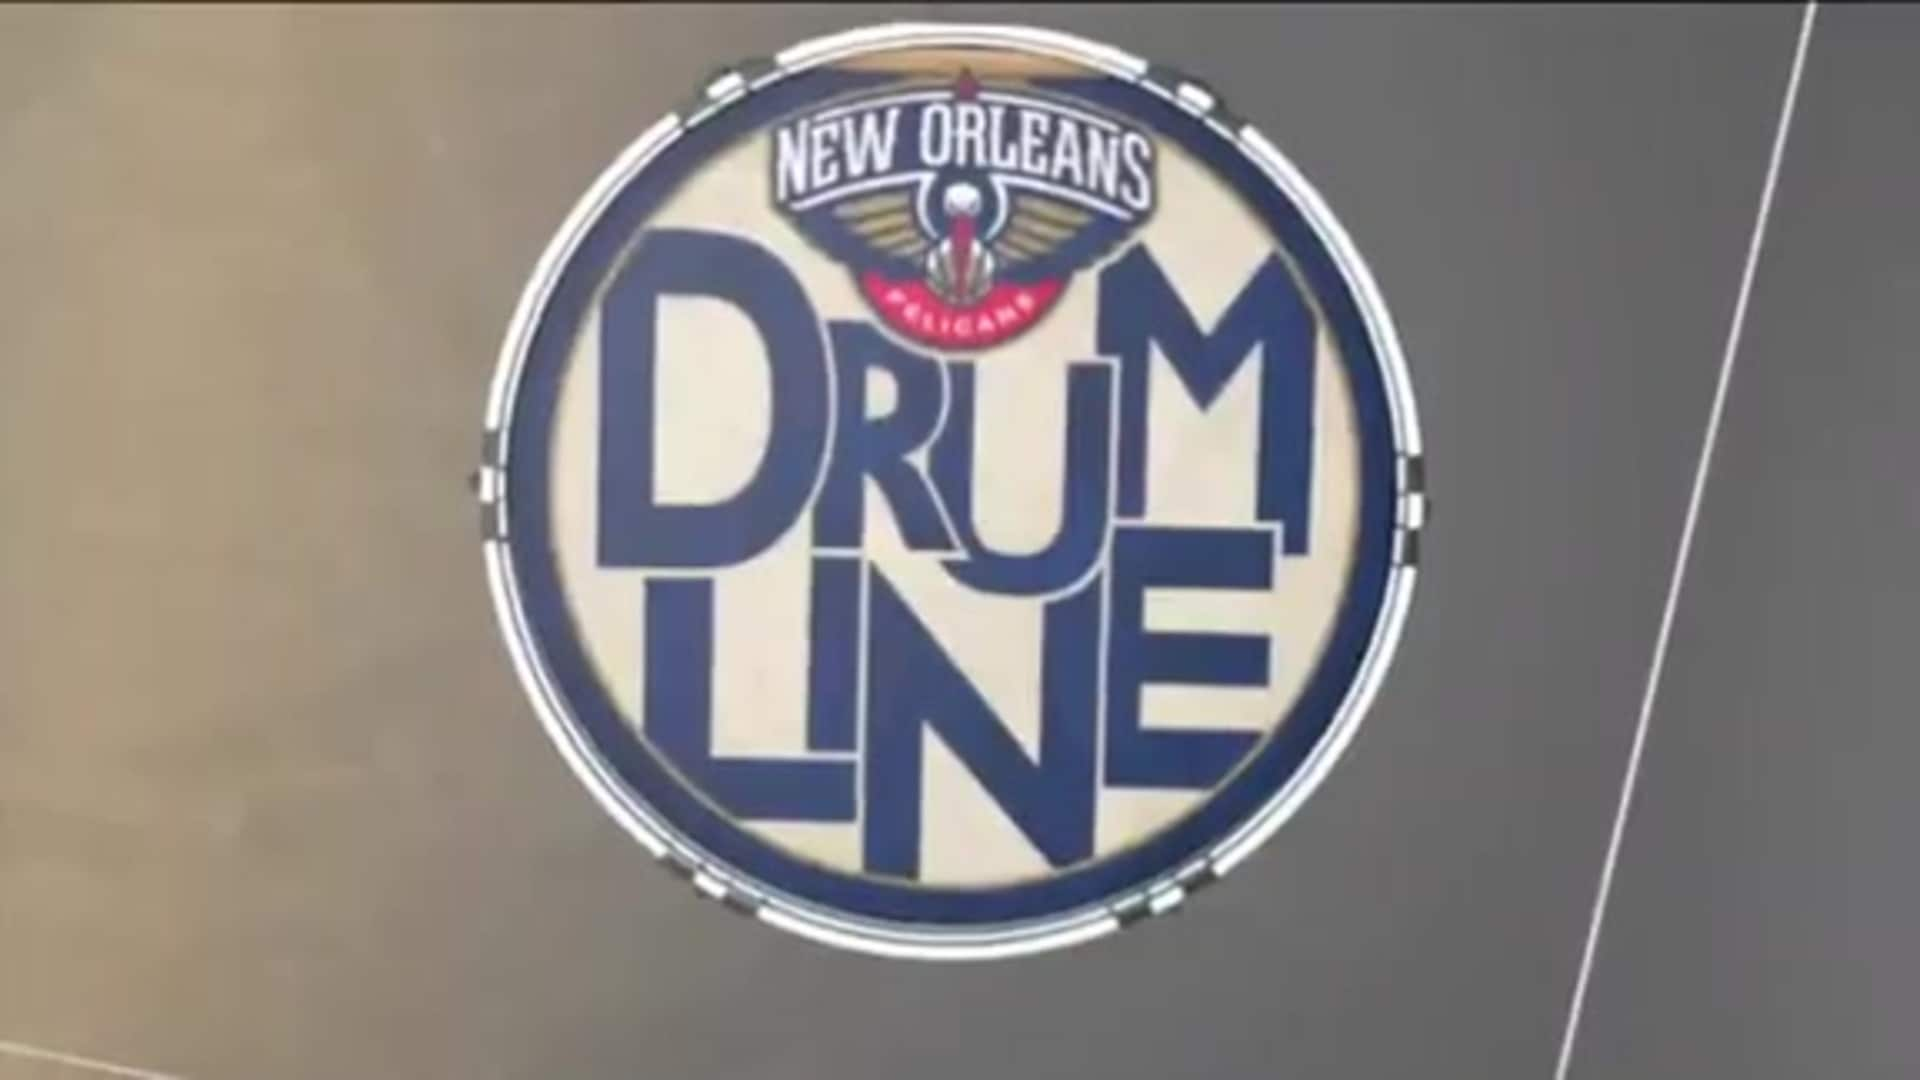 Entertainment: The Pelicans Drum Line performance - January 26, 2020 vs. Boston Celtics